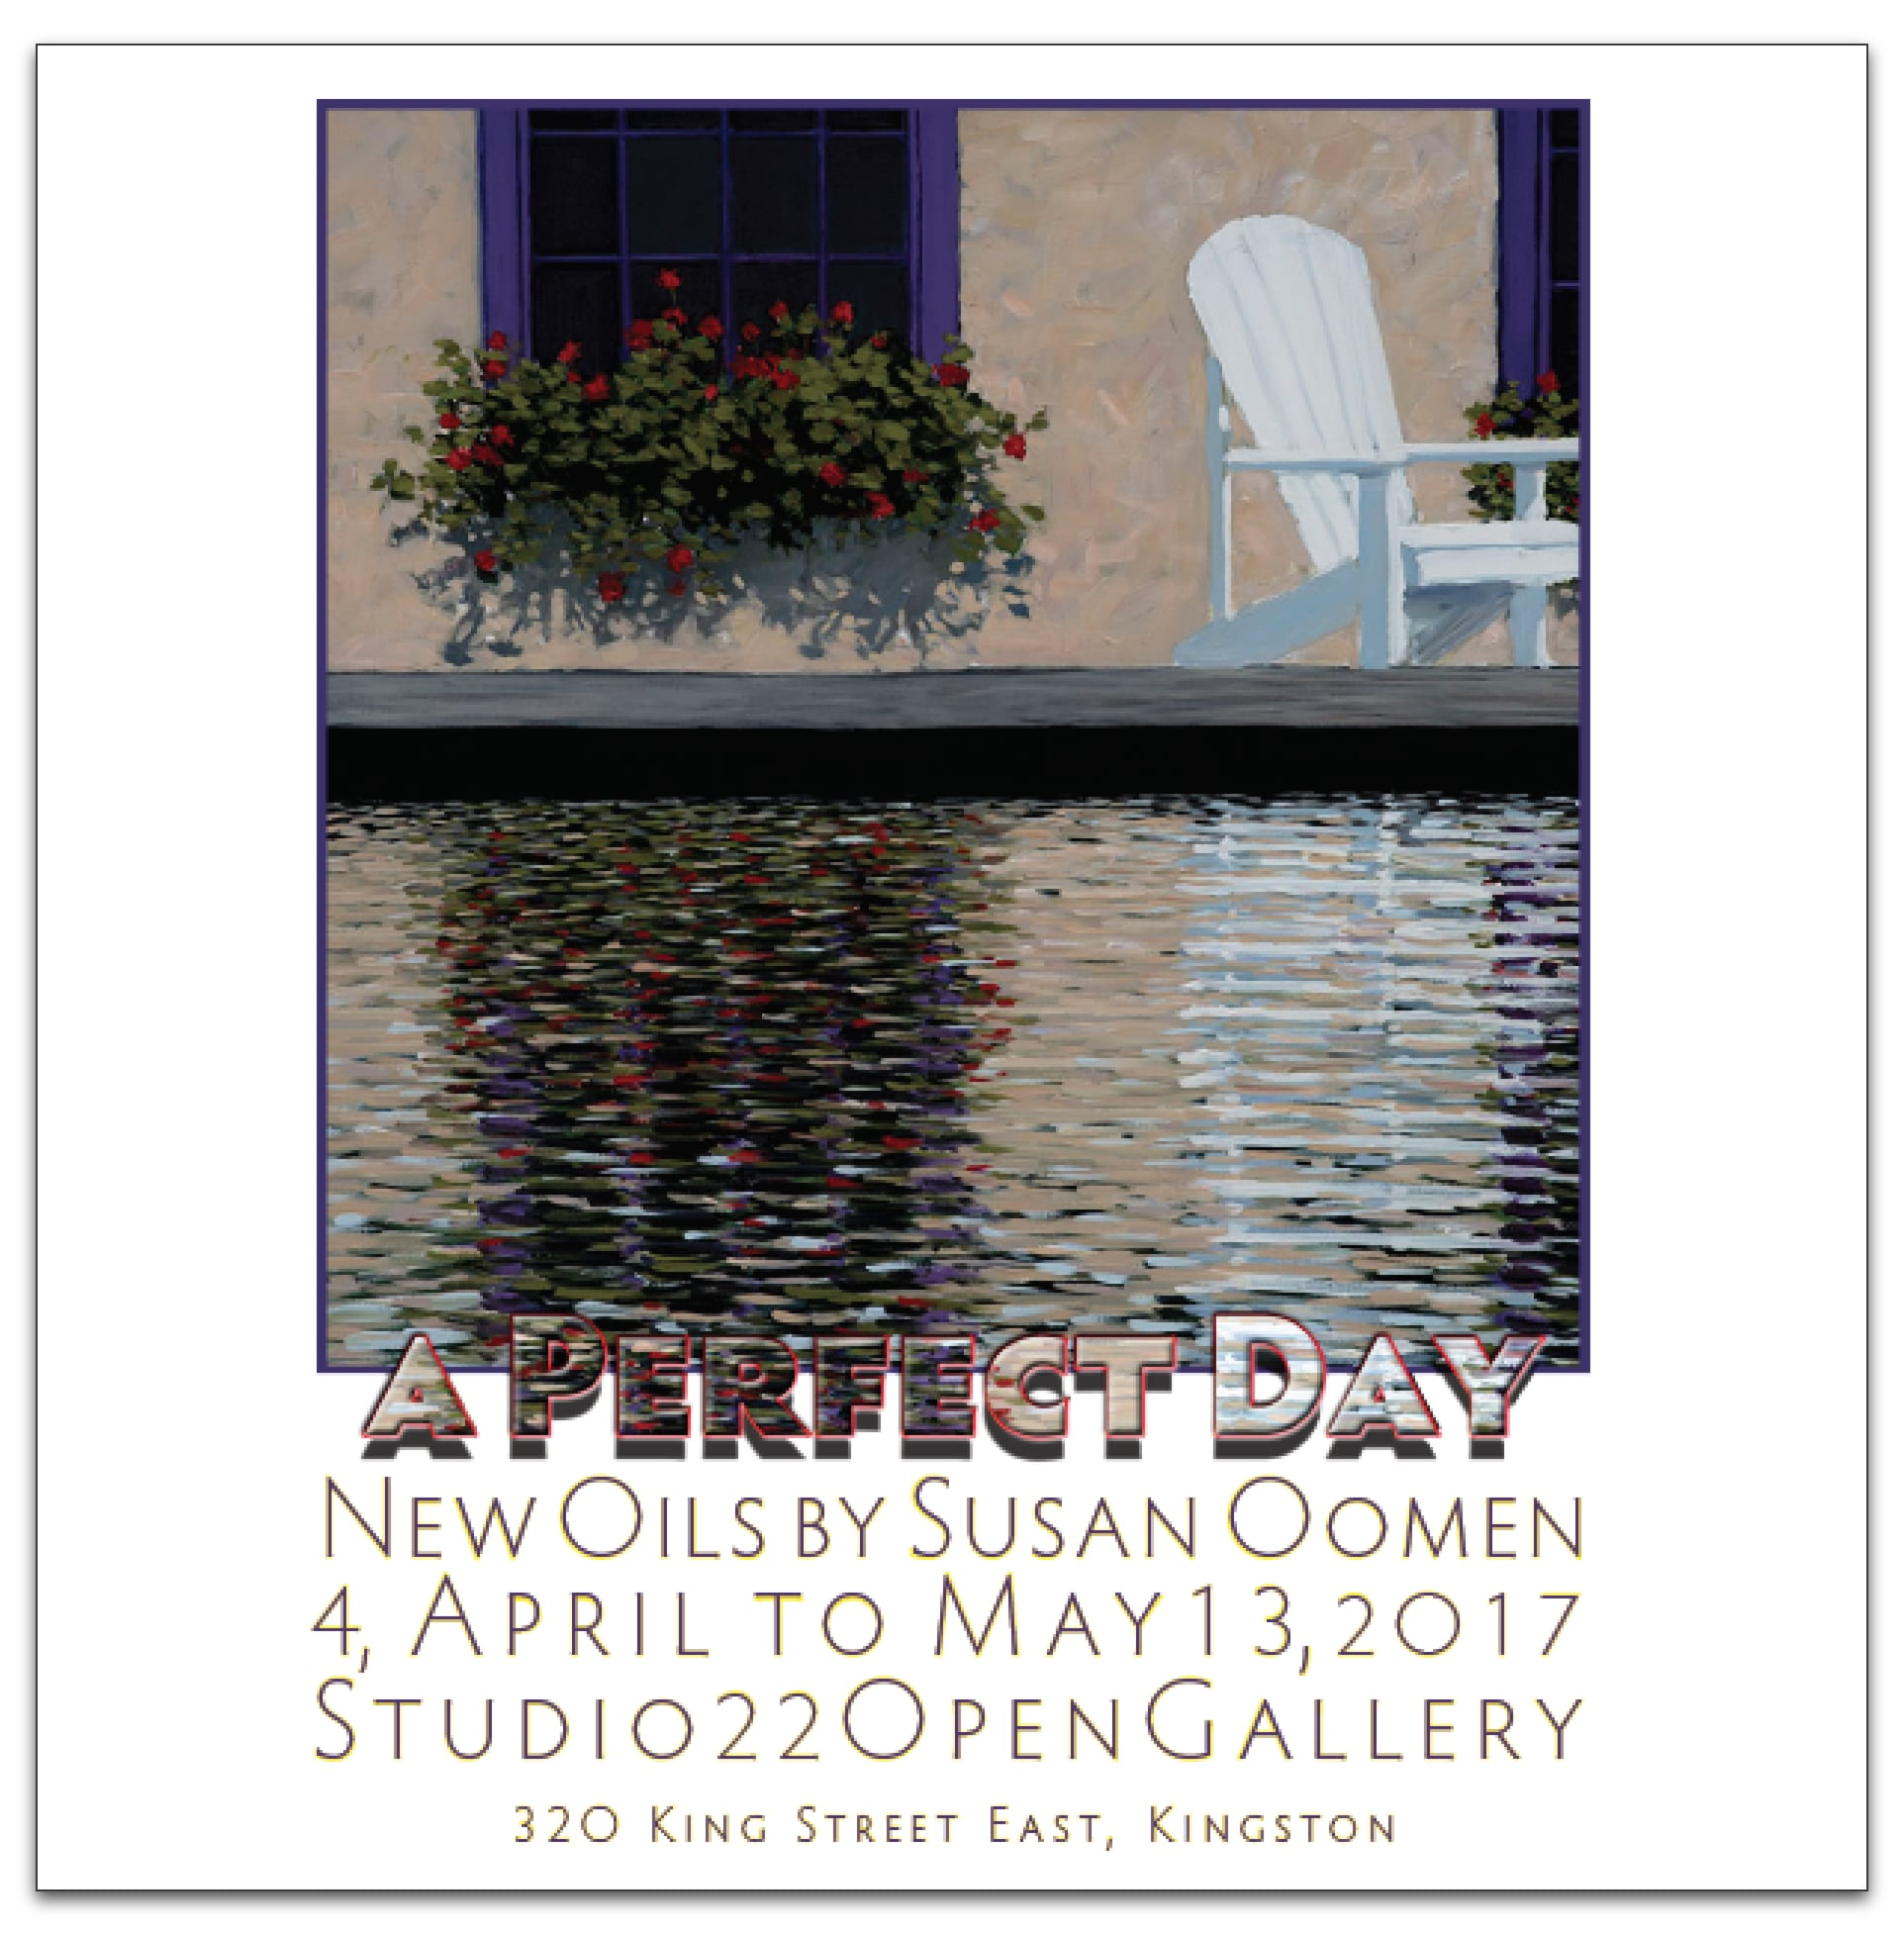 A Perfect Day – New Oils by Susan Oomen